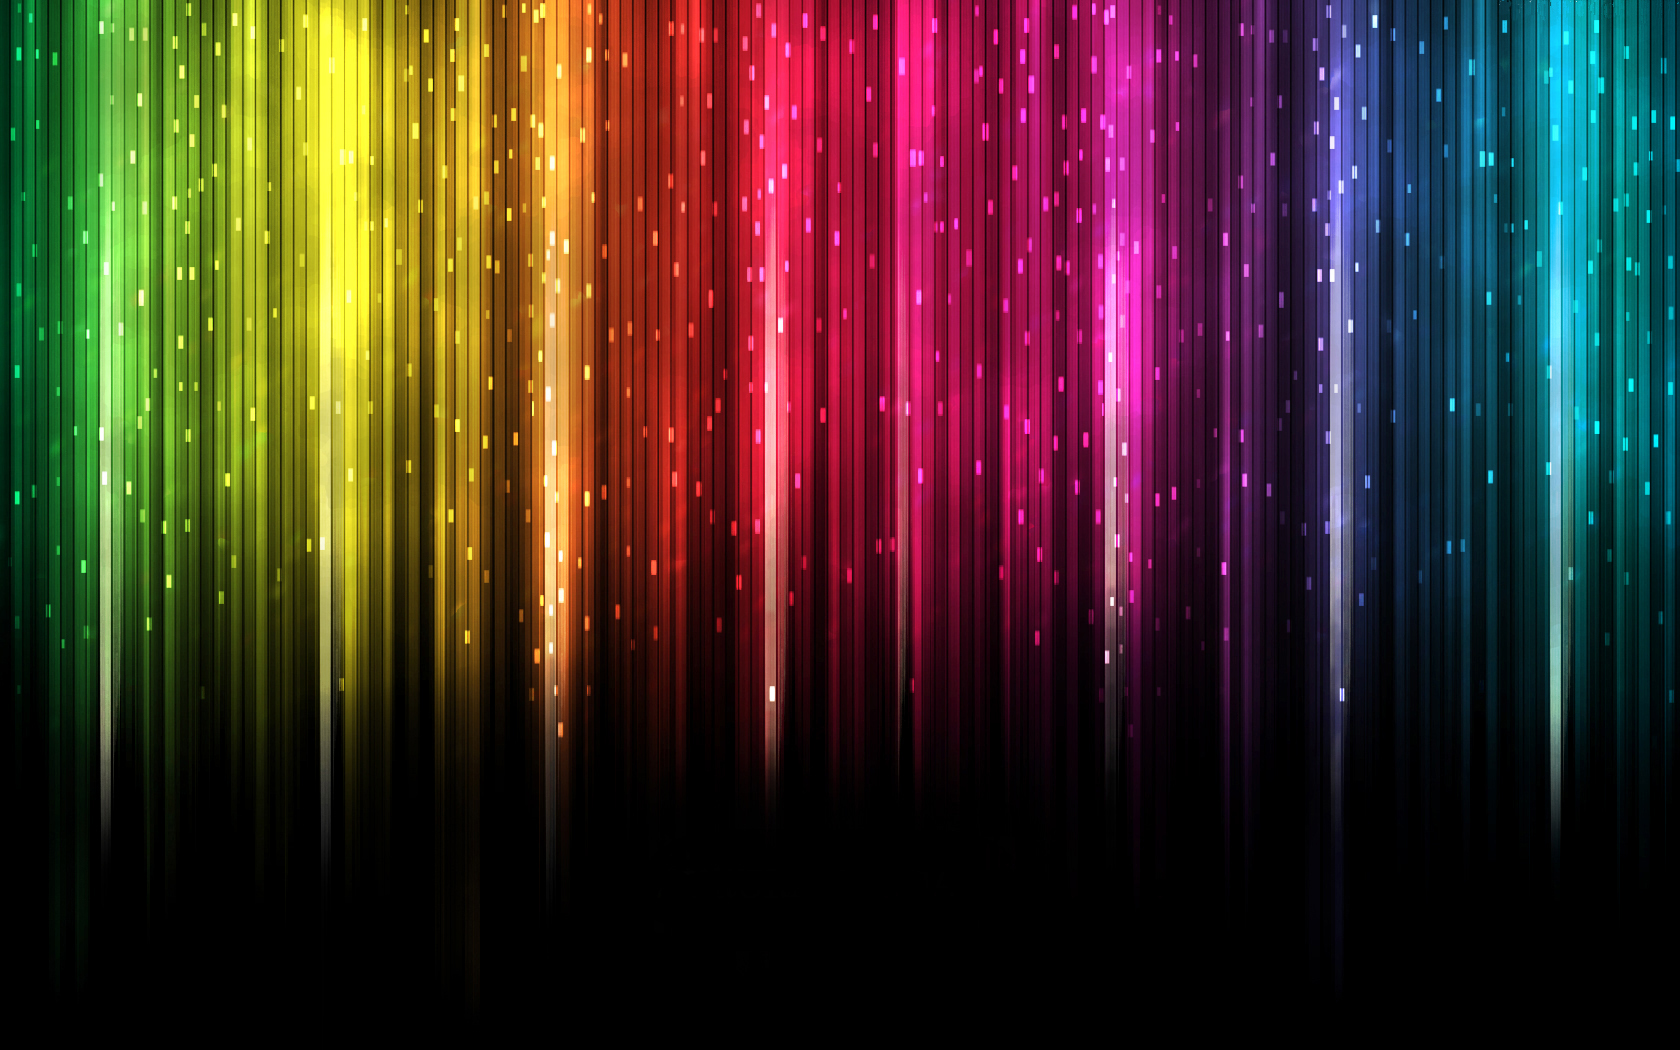 colorful fever images pretty colors HD wallpaper and 1680x1050